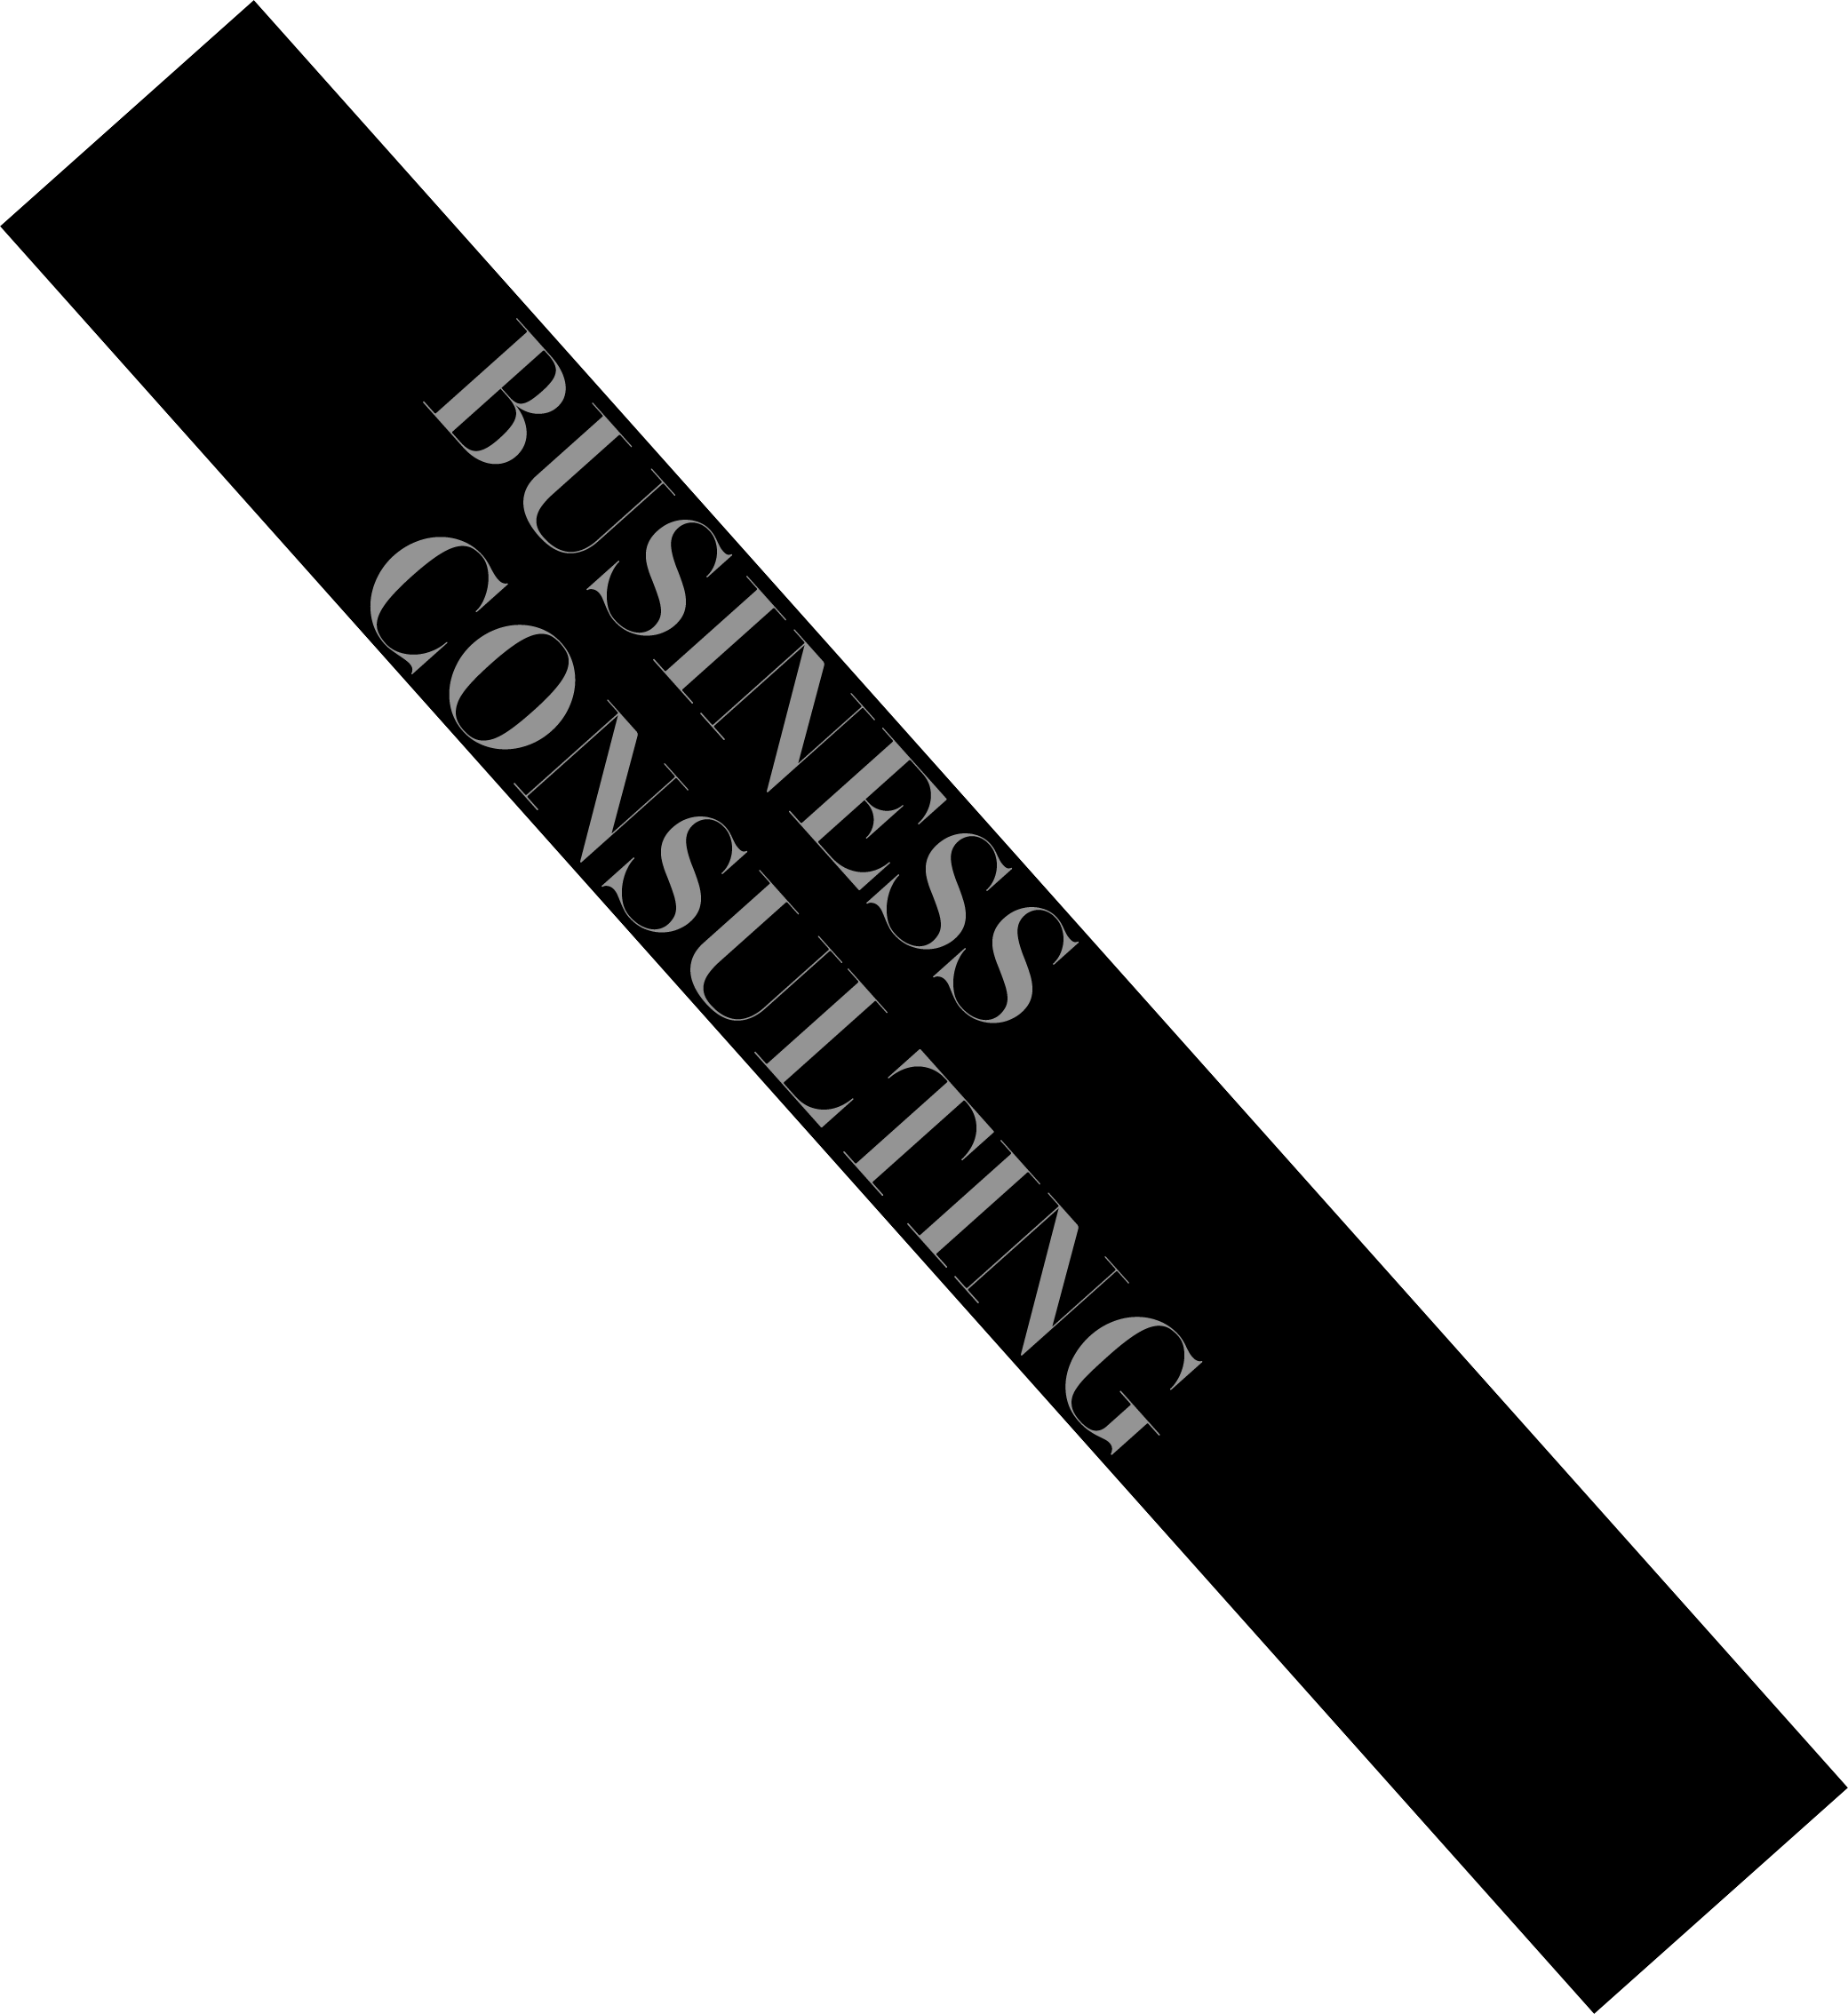 bussiness consulting